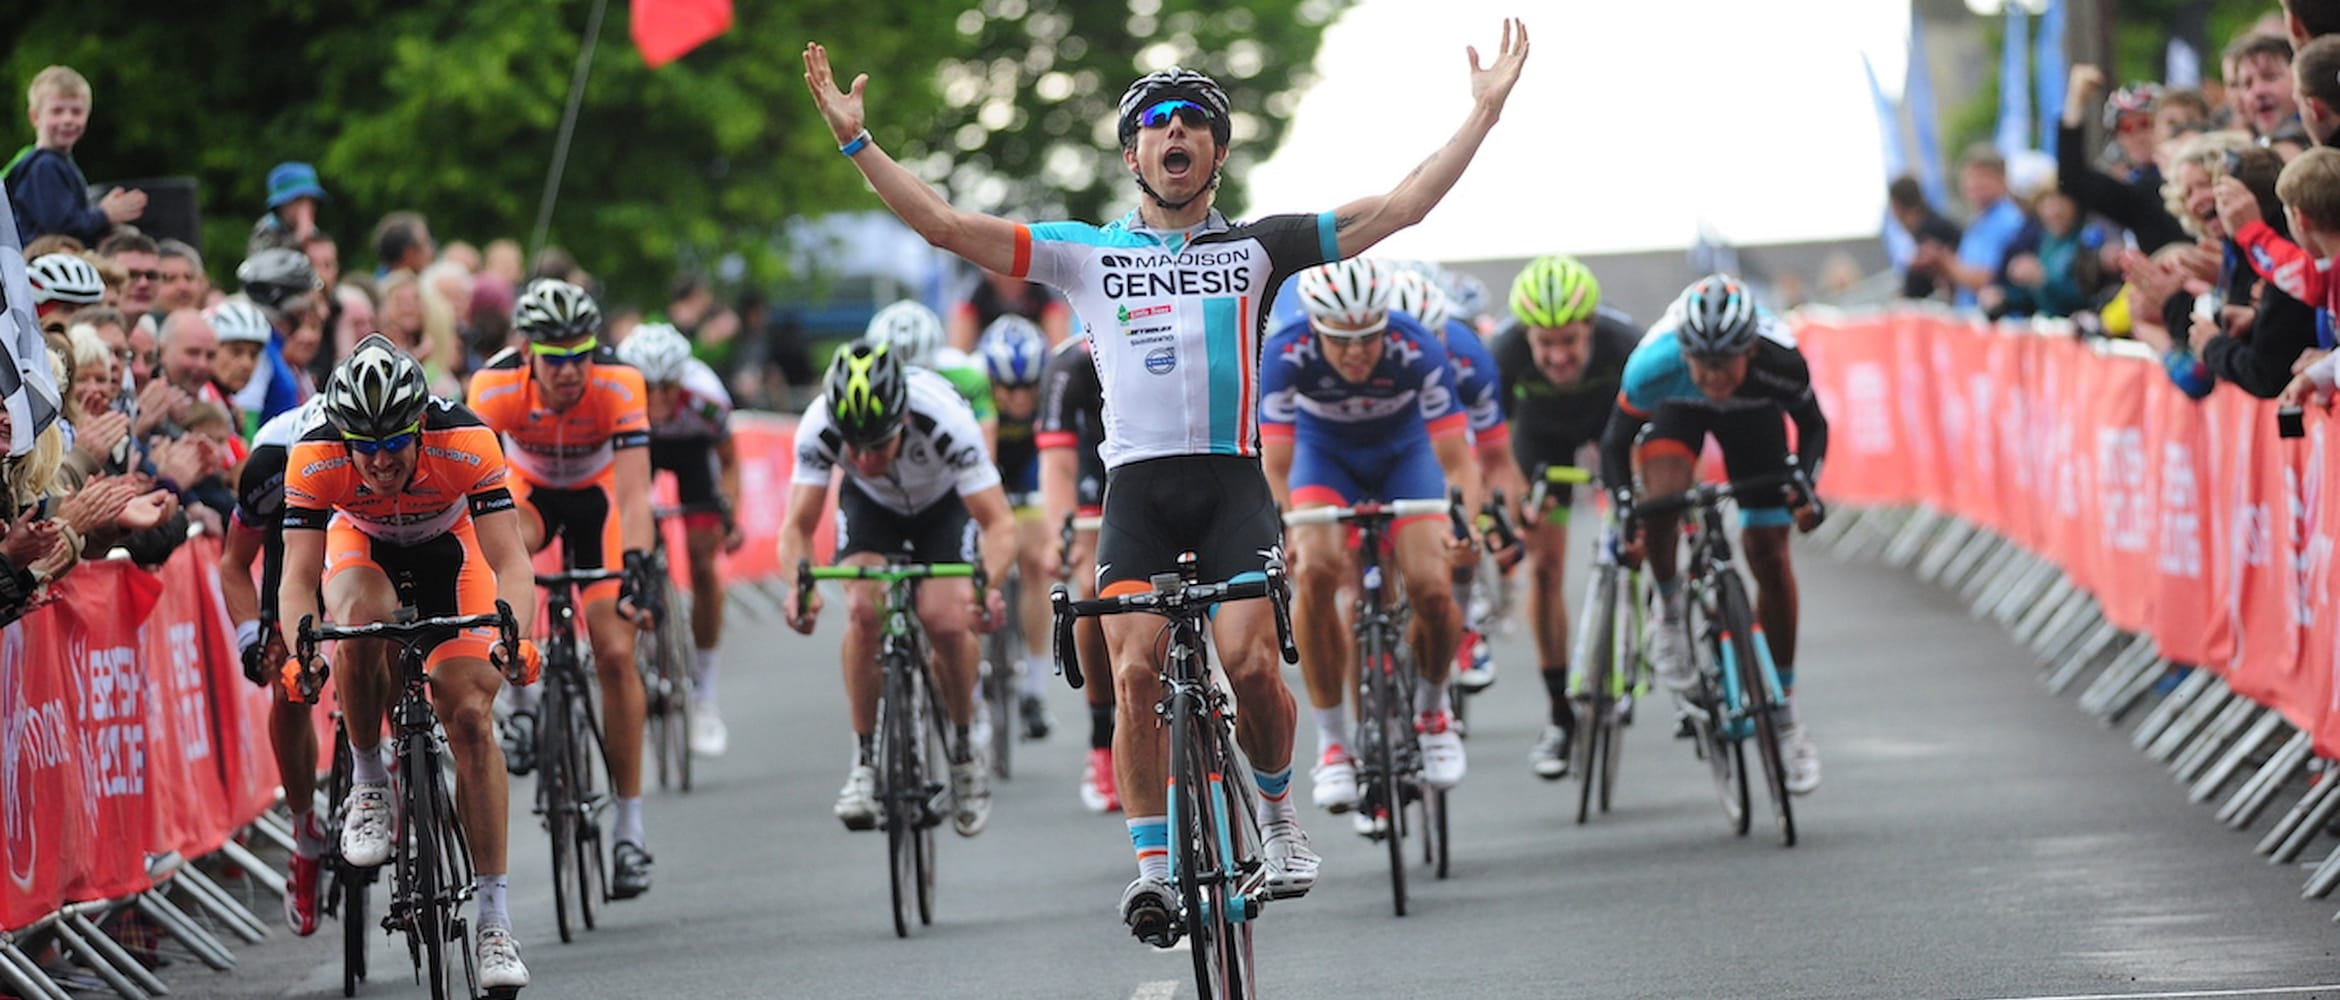 Cyclist Dean Downing with his arms in the air as he crosses the finishing line with spectators behind barriers on both sides of the road and other riders in the background